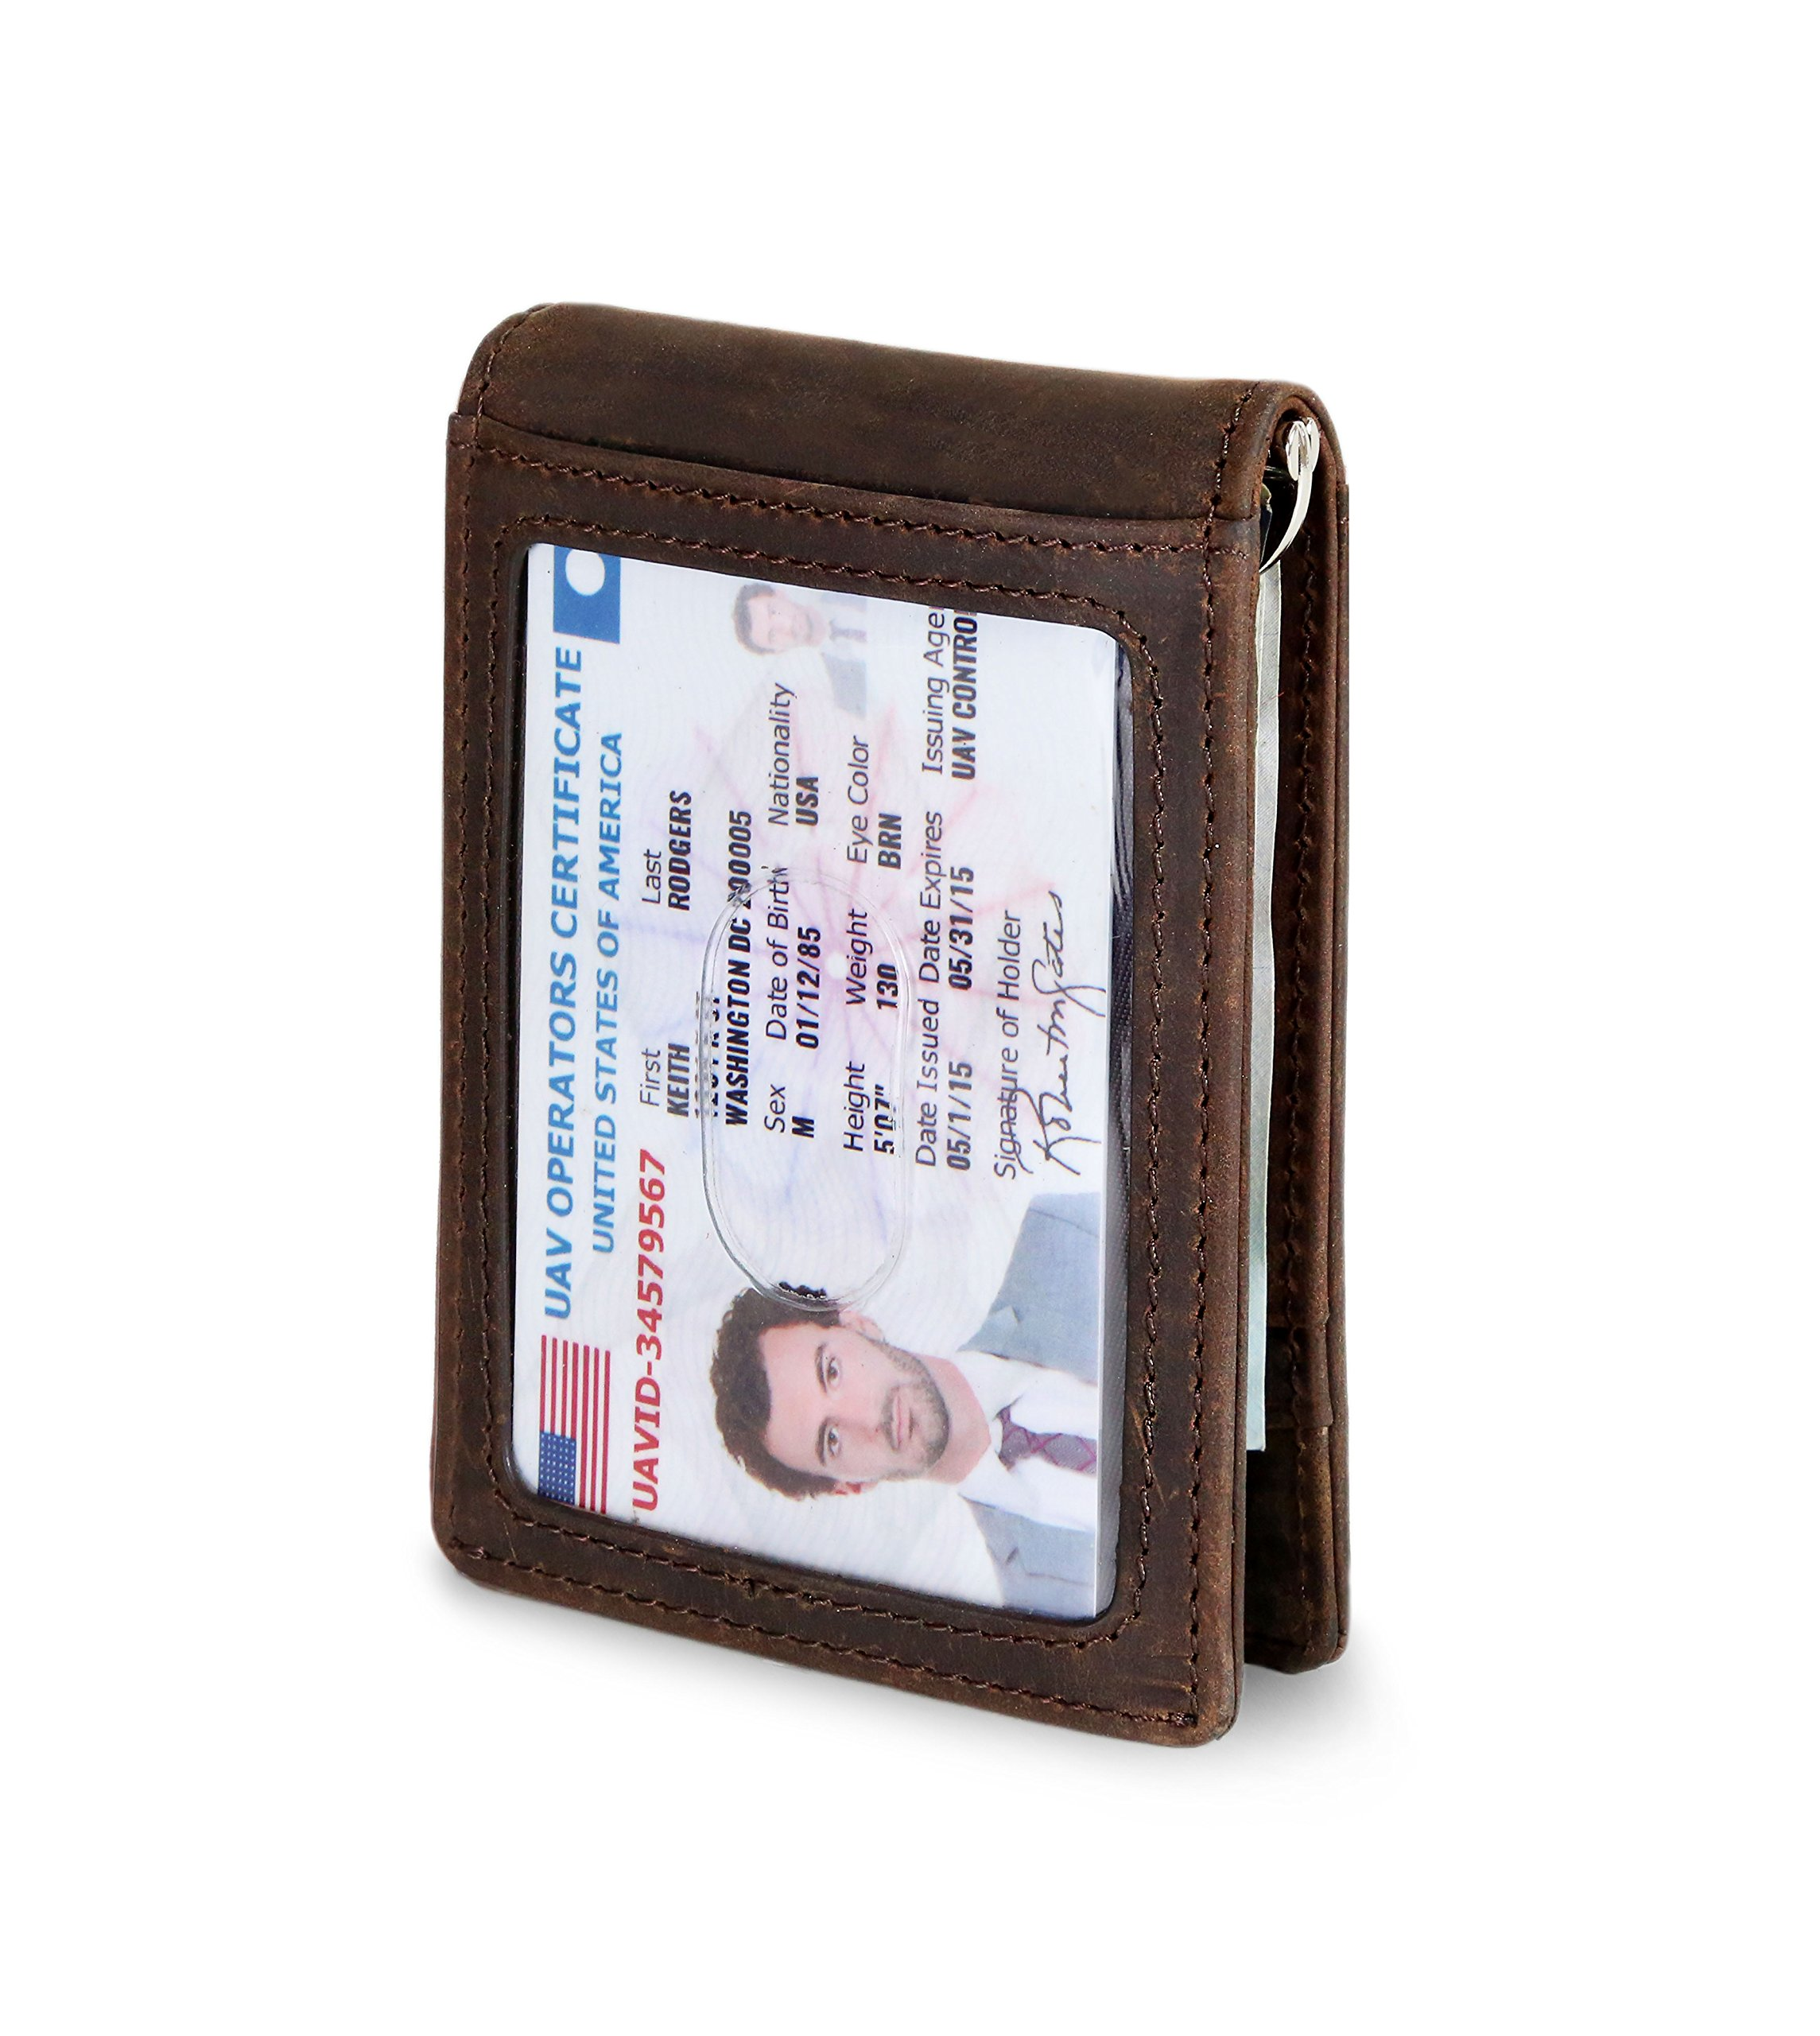 Travel Wallet RFID Blocking Bifold Slim Genuine Leather Thin Minimalist Front Pocket Mens Wallets with Money Clip - Made From Full Grain Leather (Texas Brown 1.S)